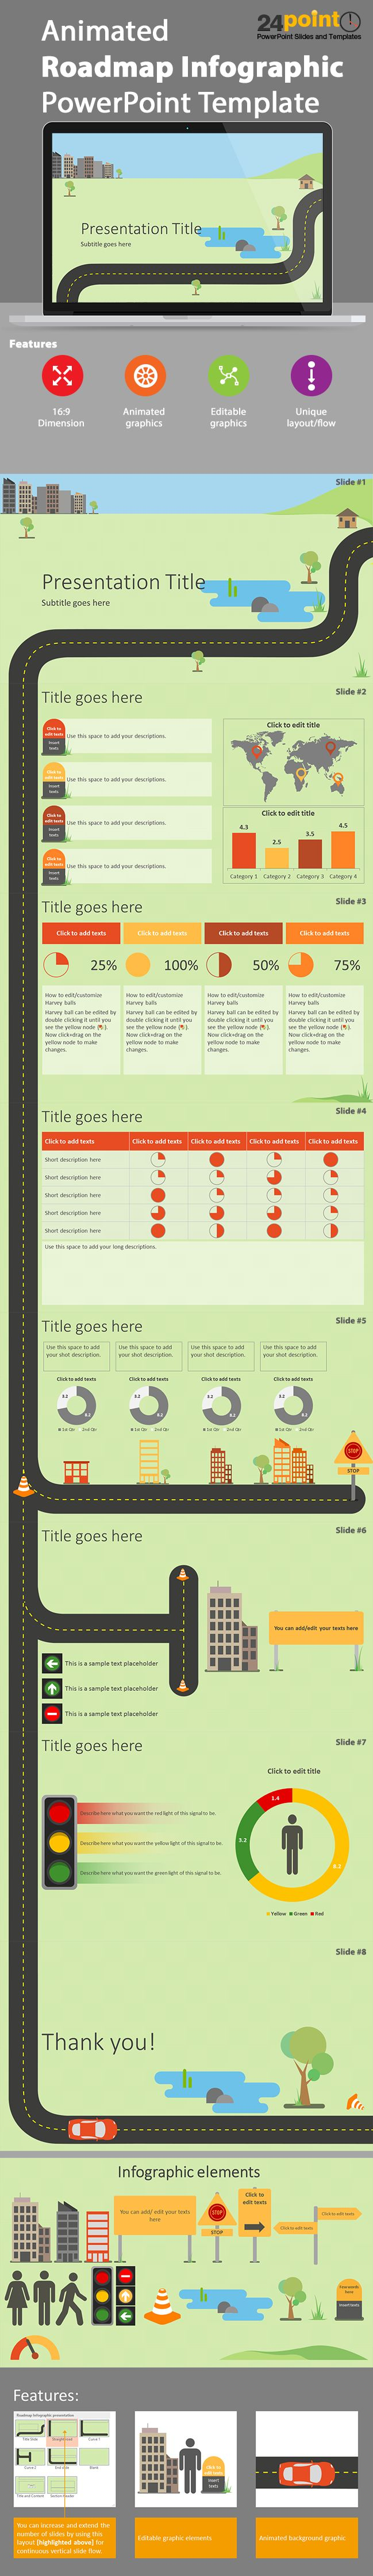 Animated Infographics PowerPoint Presentation Template @24point0